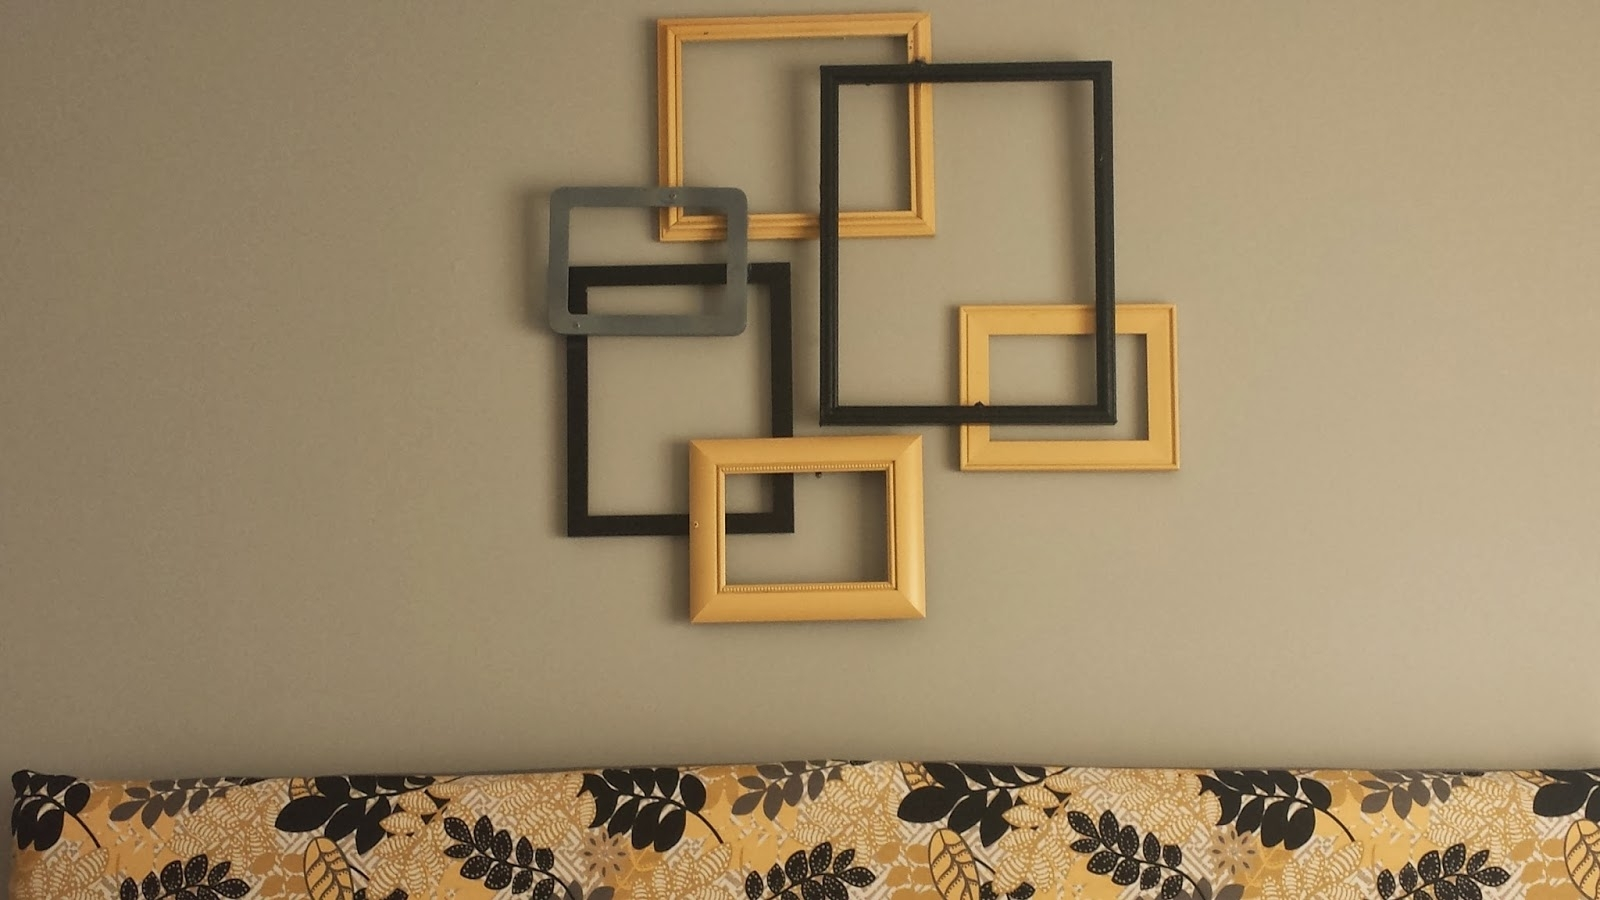 Wall Art Designs: Wall Art Frame Living Room Decoration For Bedroom with regard to Cheap Framed Wall Art (Image 20 of 20)